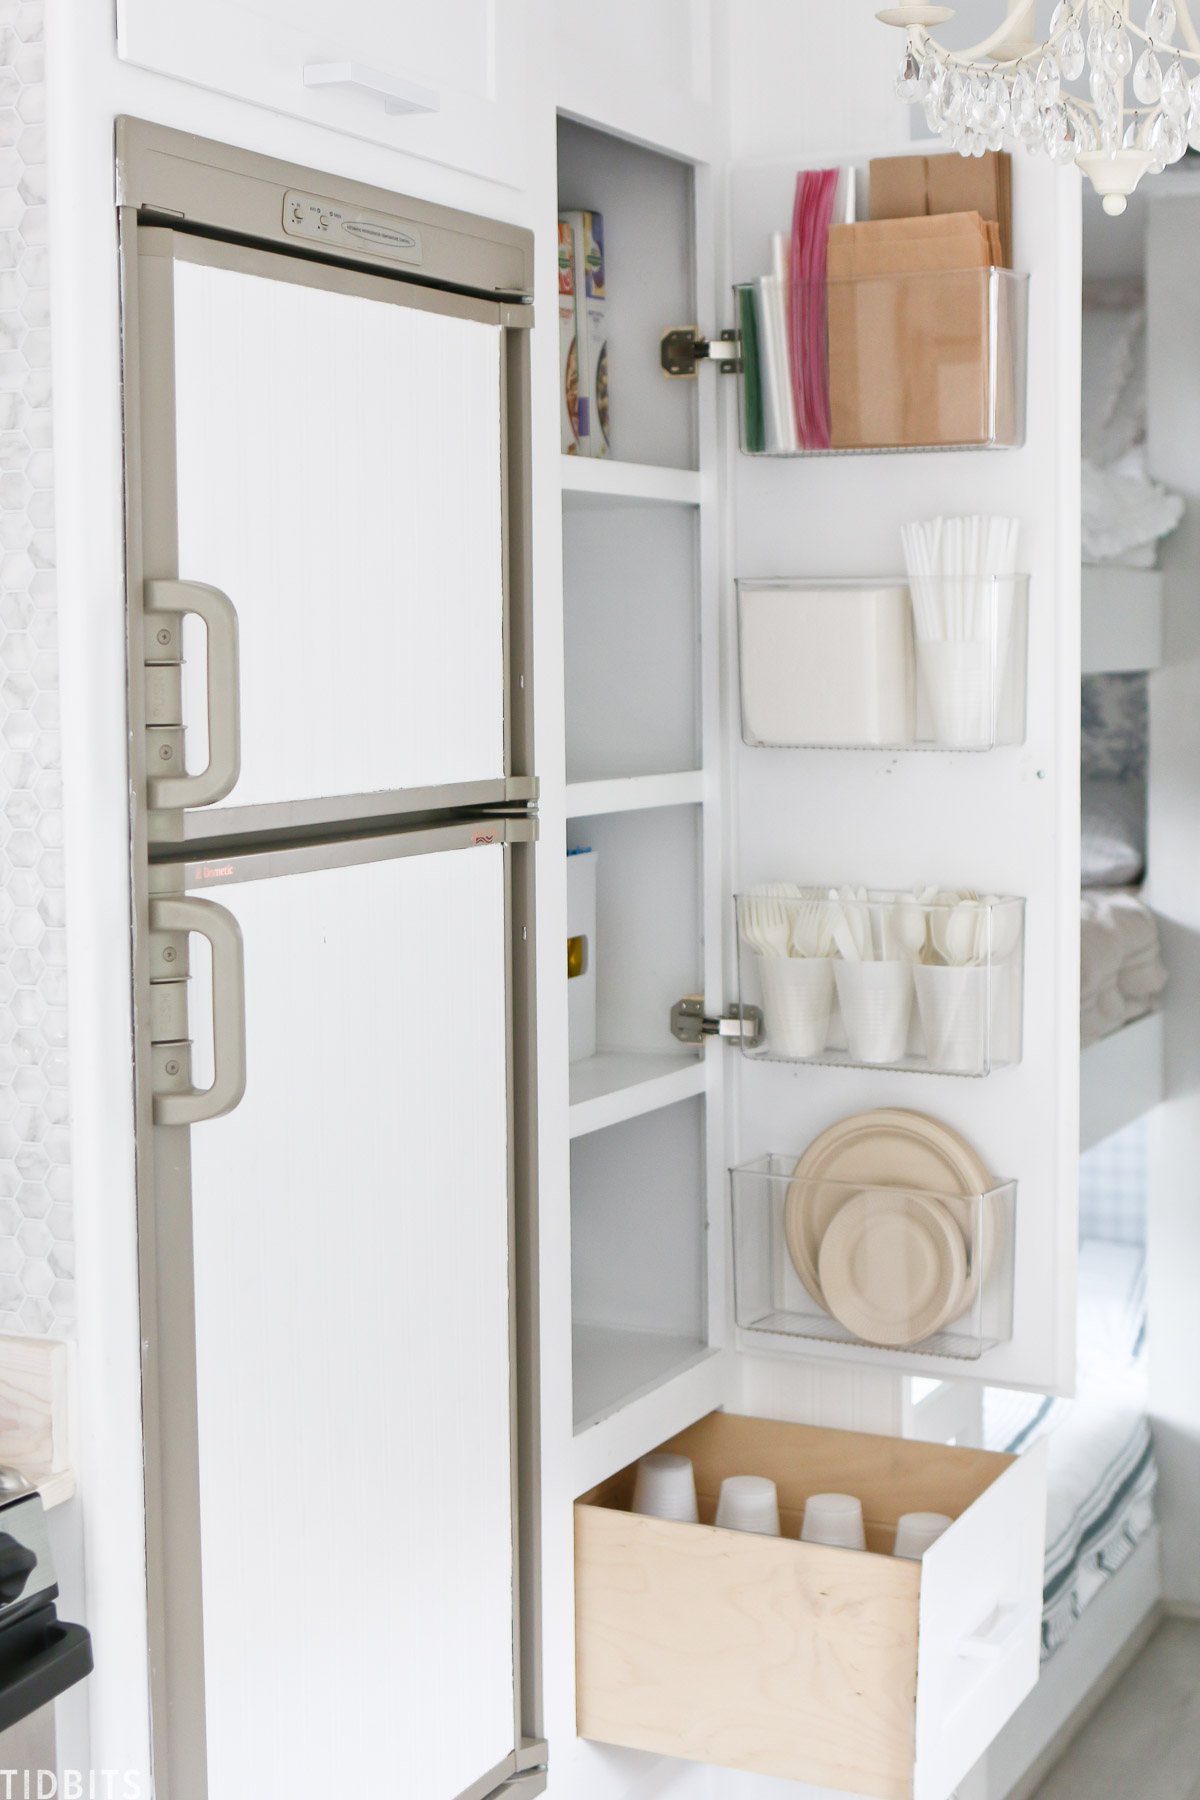 Store paper products on the inside of the kitchen cupboard with vertical storage shelves.